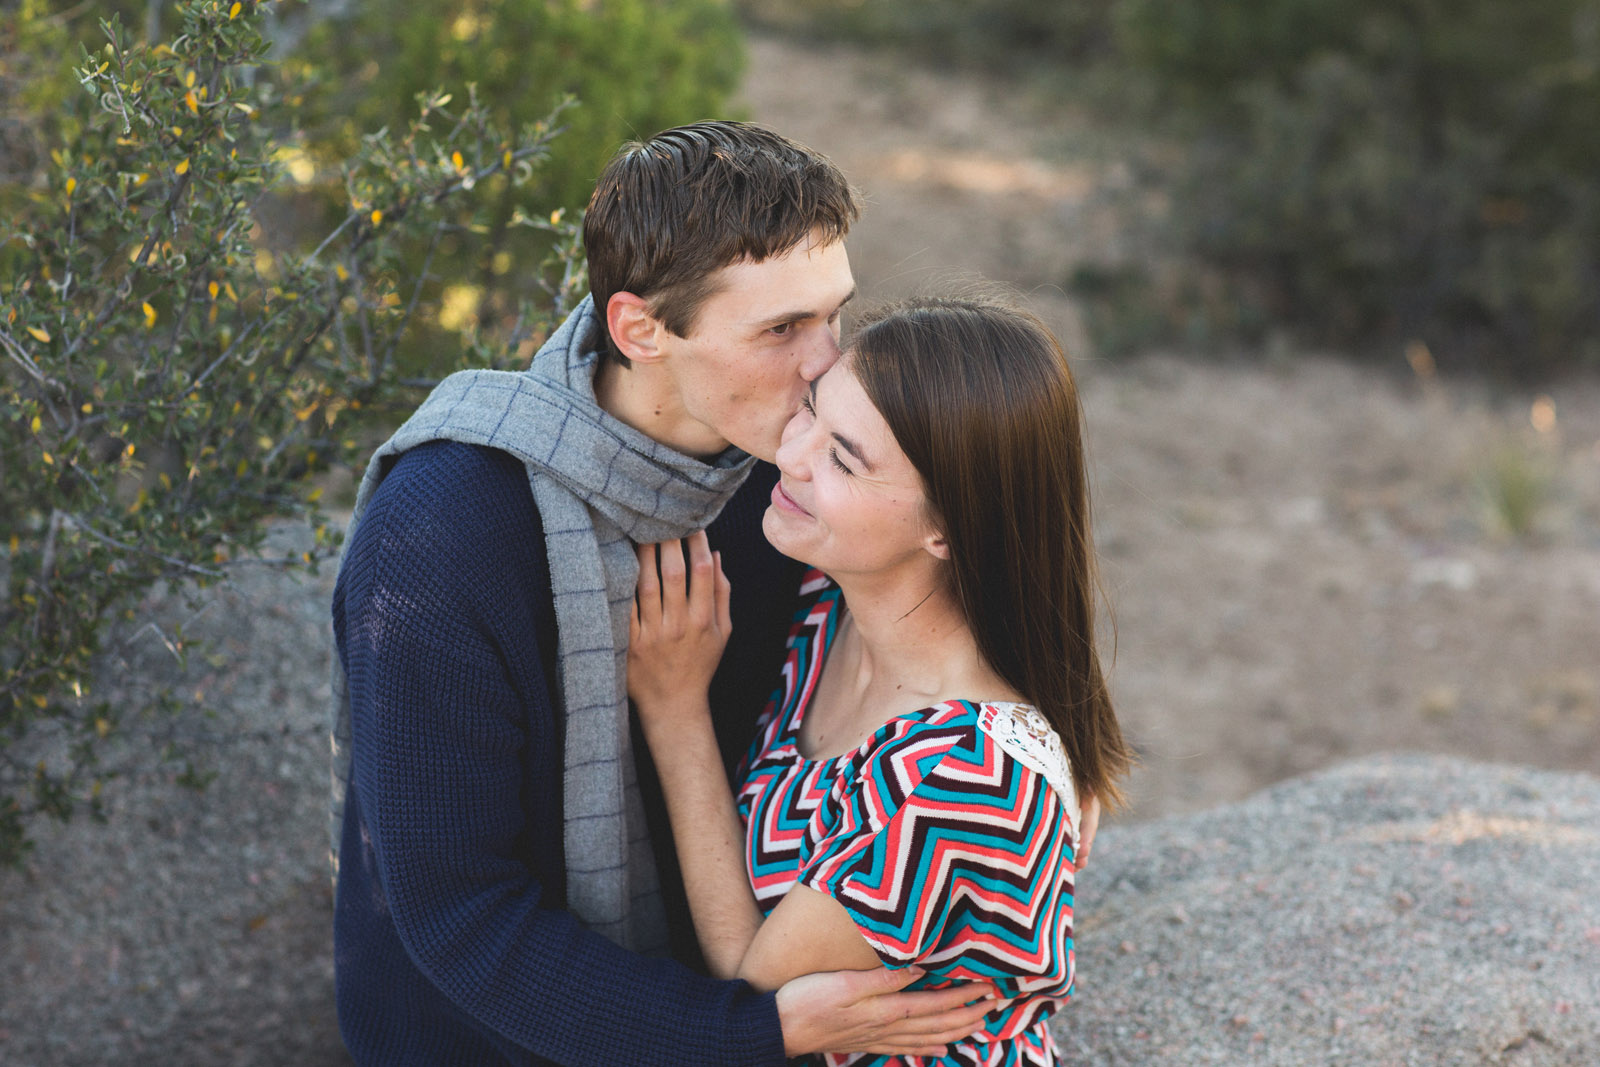 005-engagement-photography-in-nm-desert-sandia